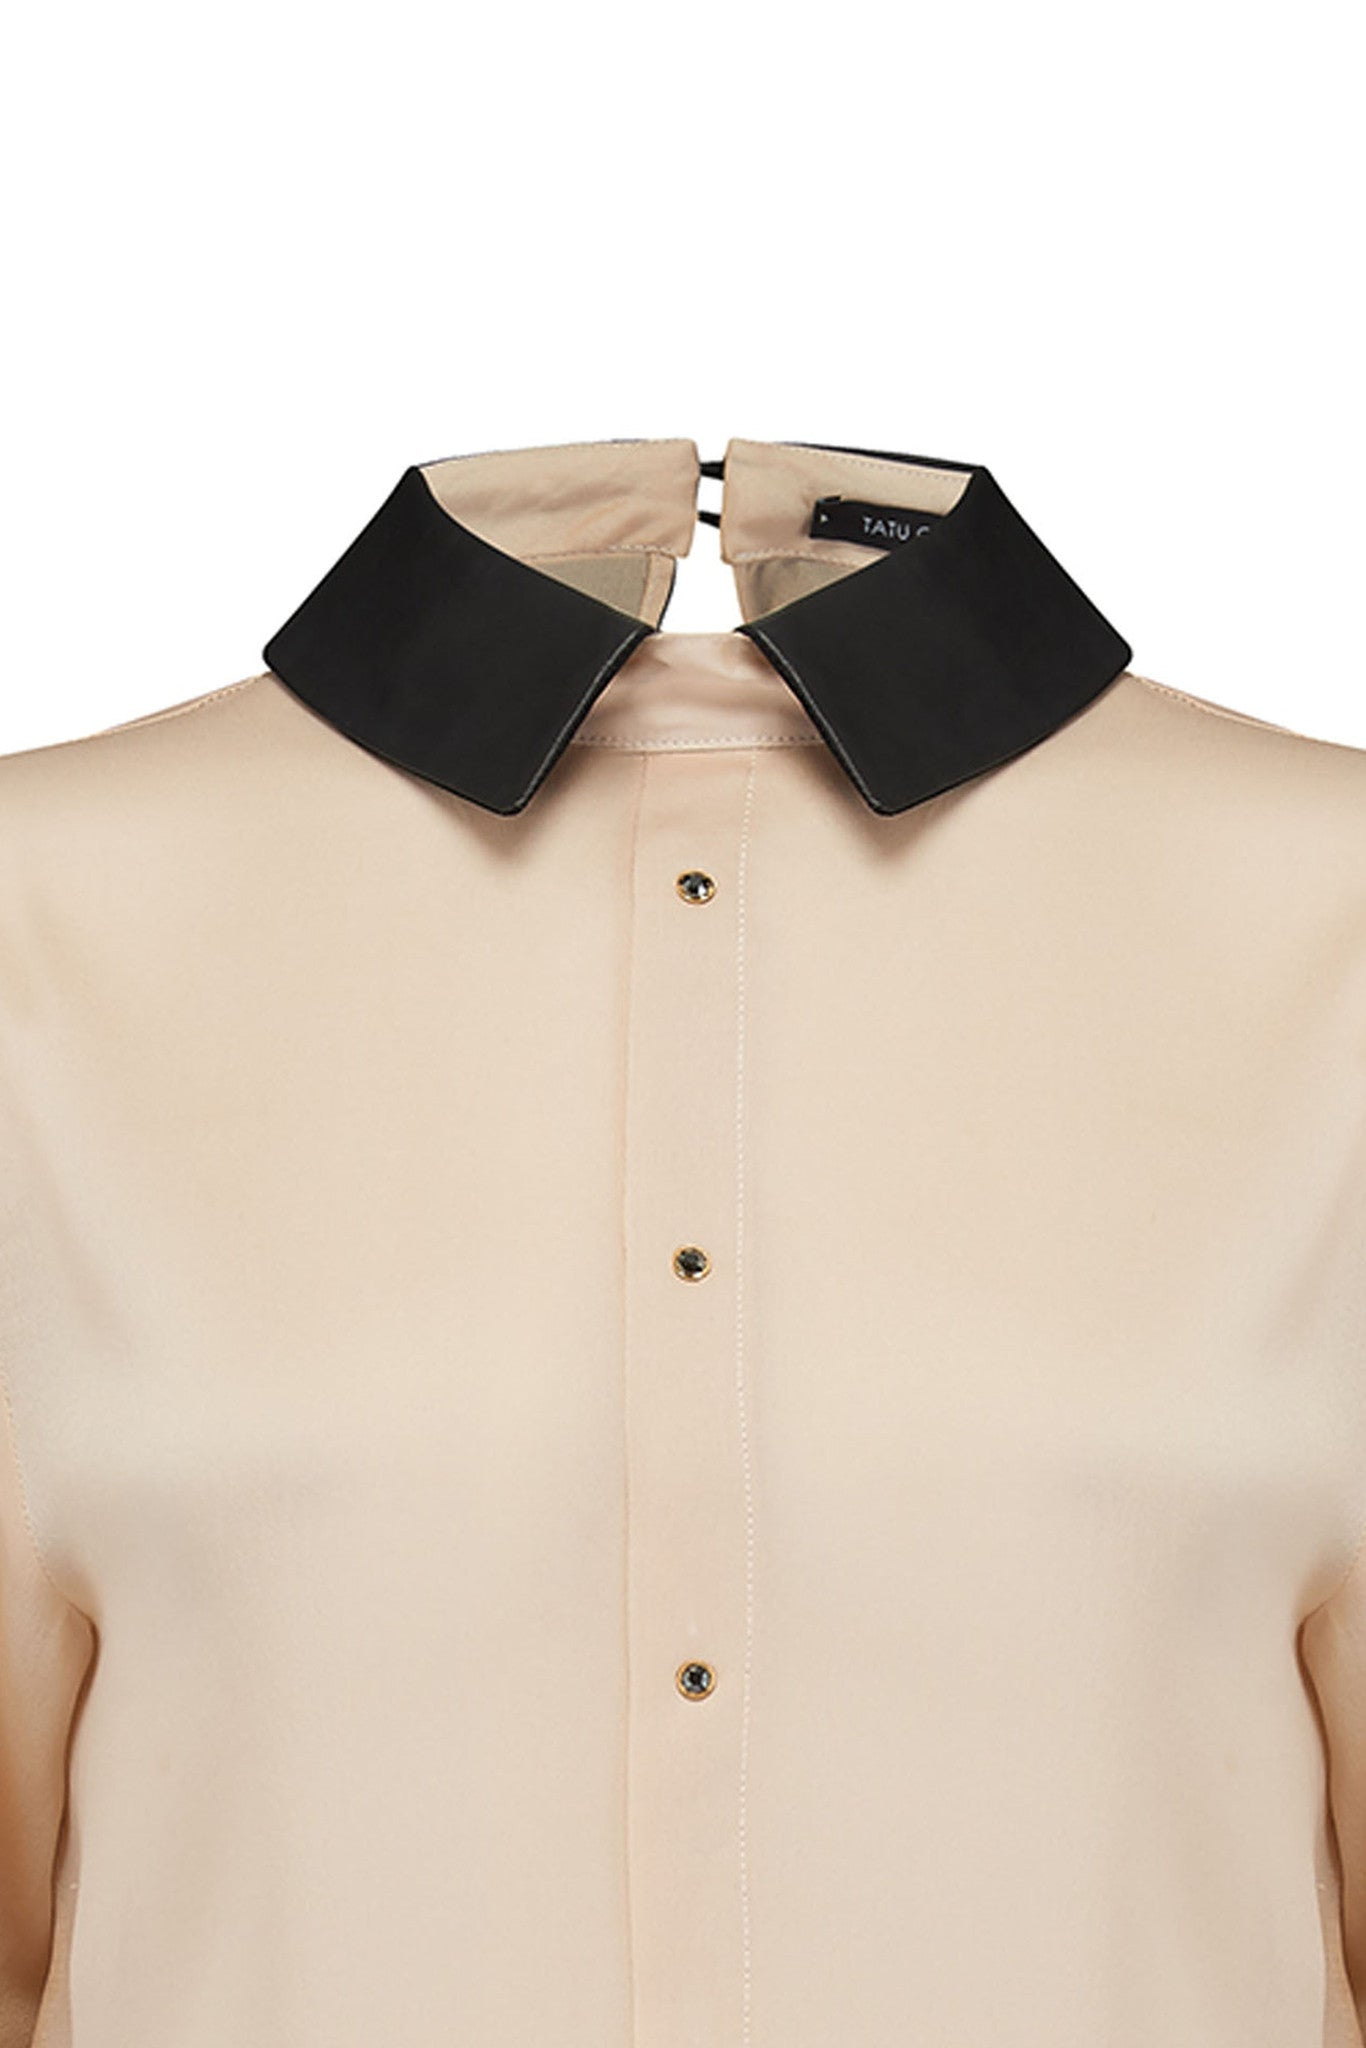 Lula Blush silk blouse bodysuit with contrast black collar detail and crystals